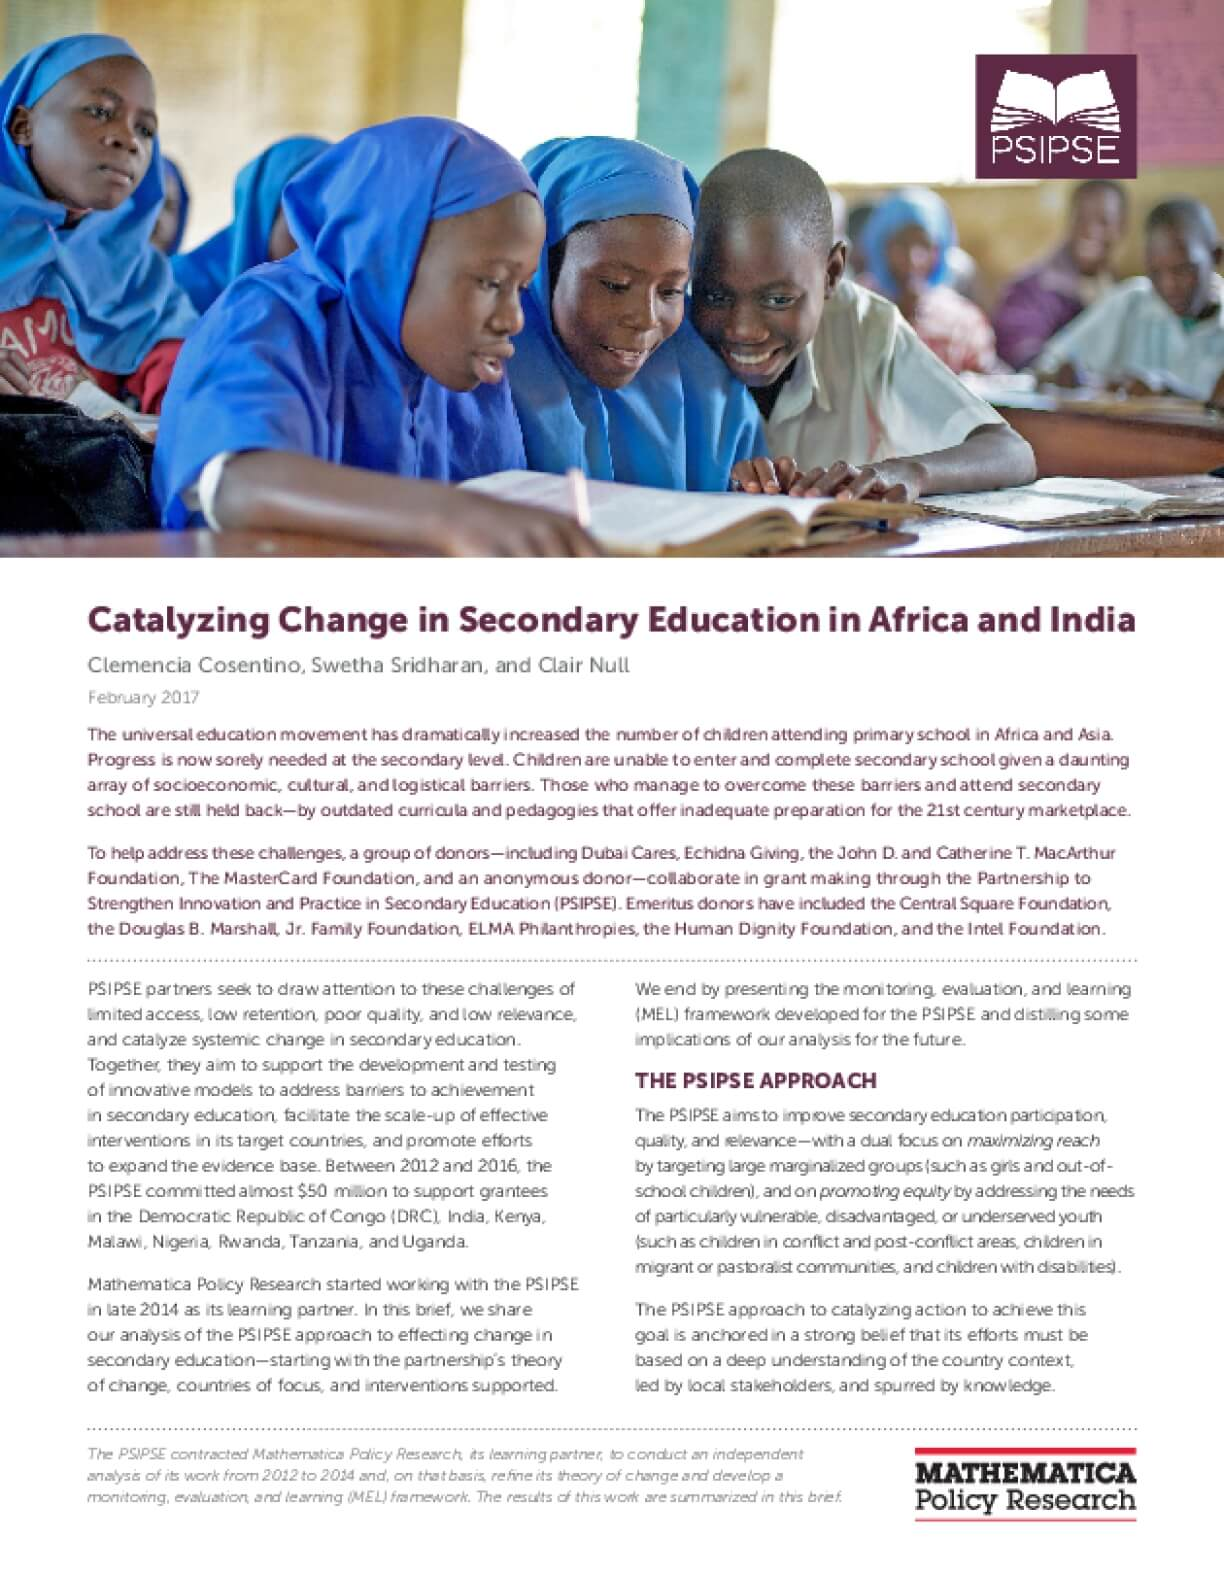 Catalyzing Change in Secondary Education in Africa and India